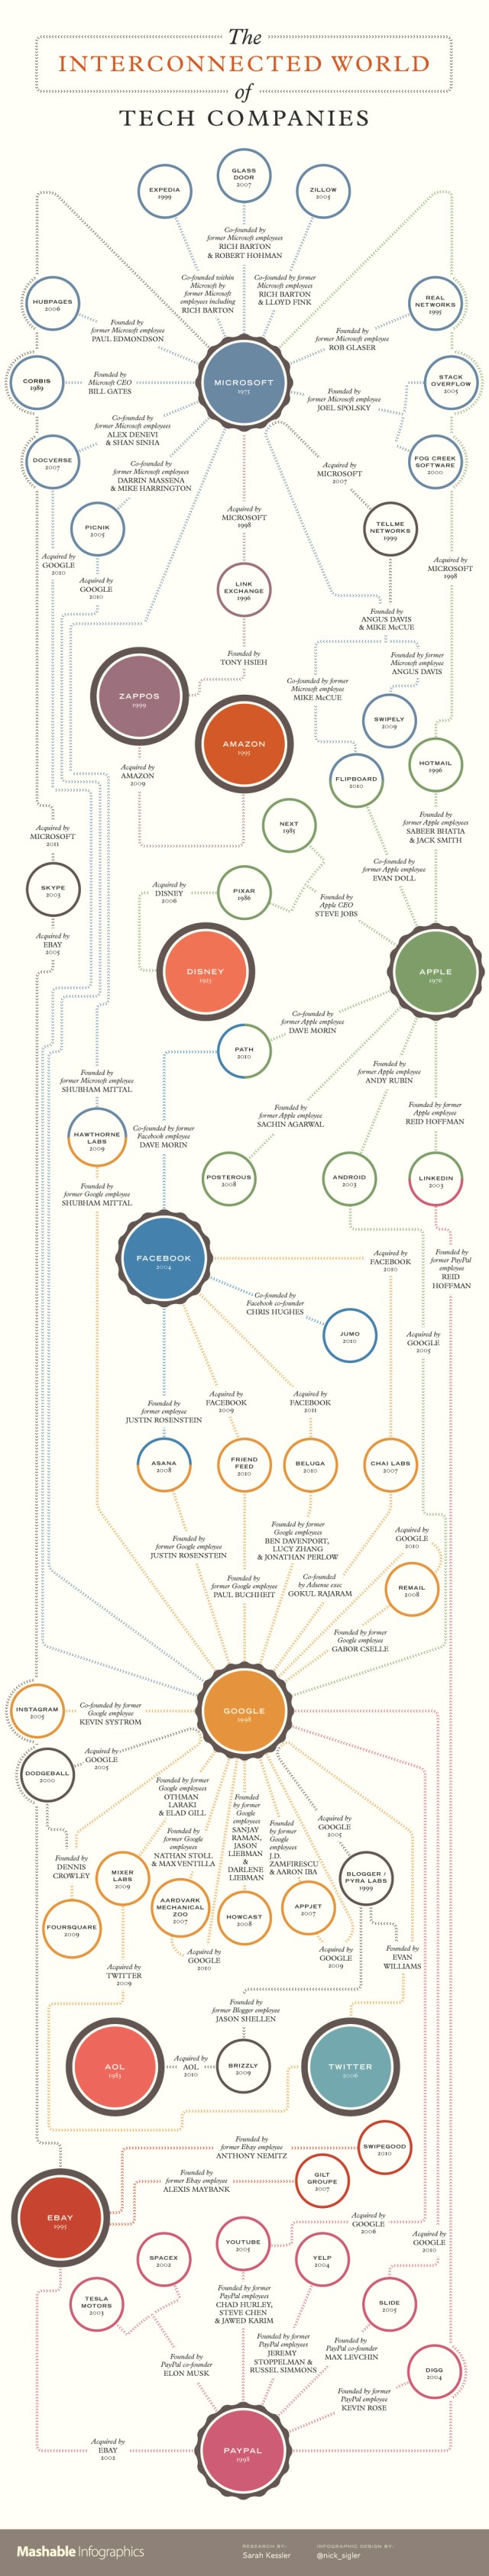 Interconnected tech companies in the valley mashable infographic